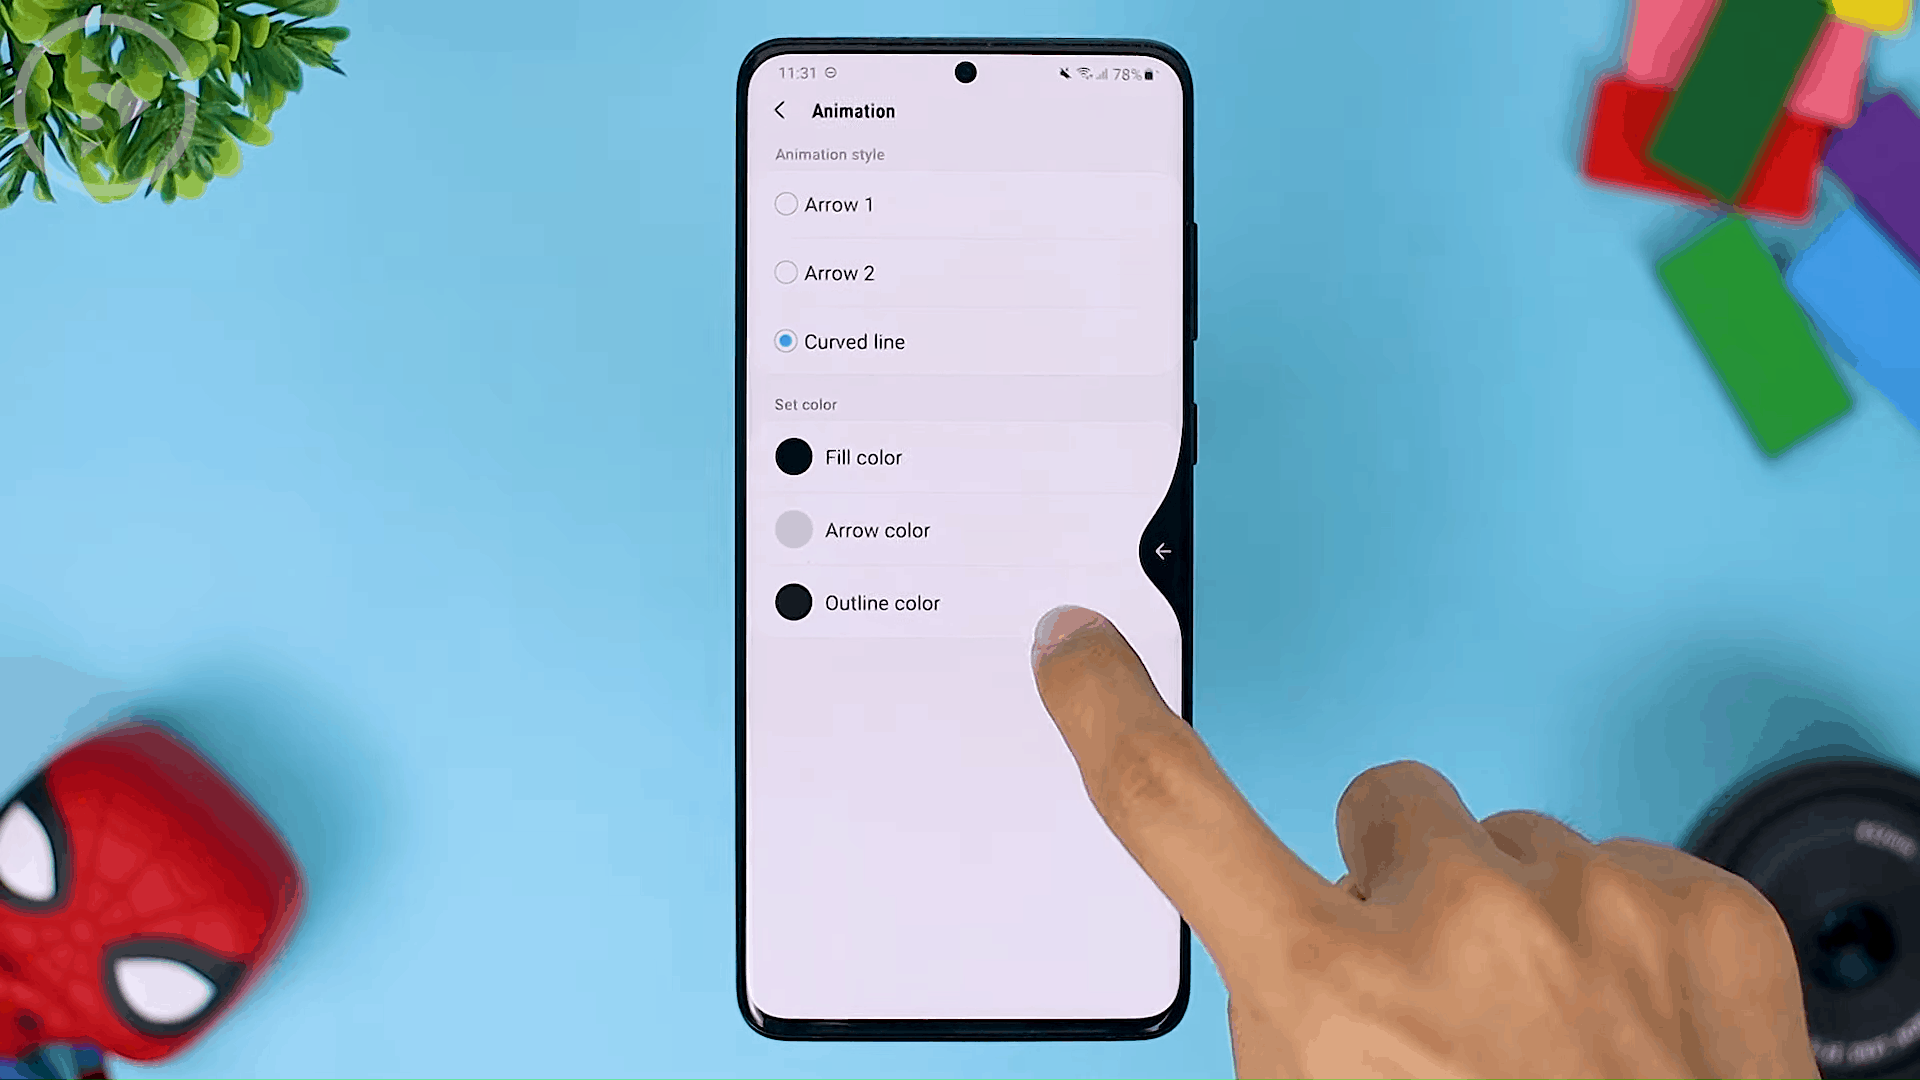 Animation - The Latest One Hand Operation+ Feature in Update 2021 - A MANDATORY Application For Full Screen Gesture Users